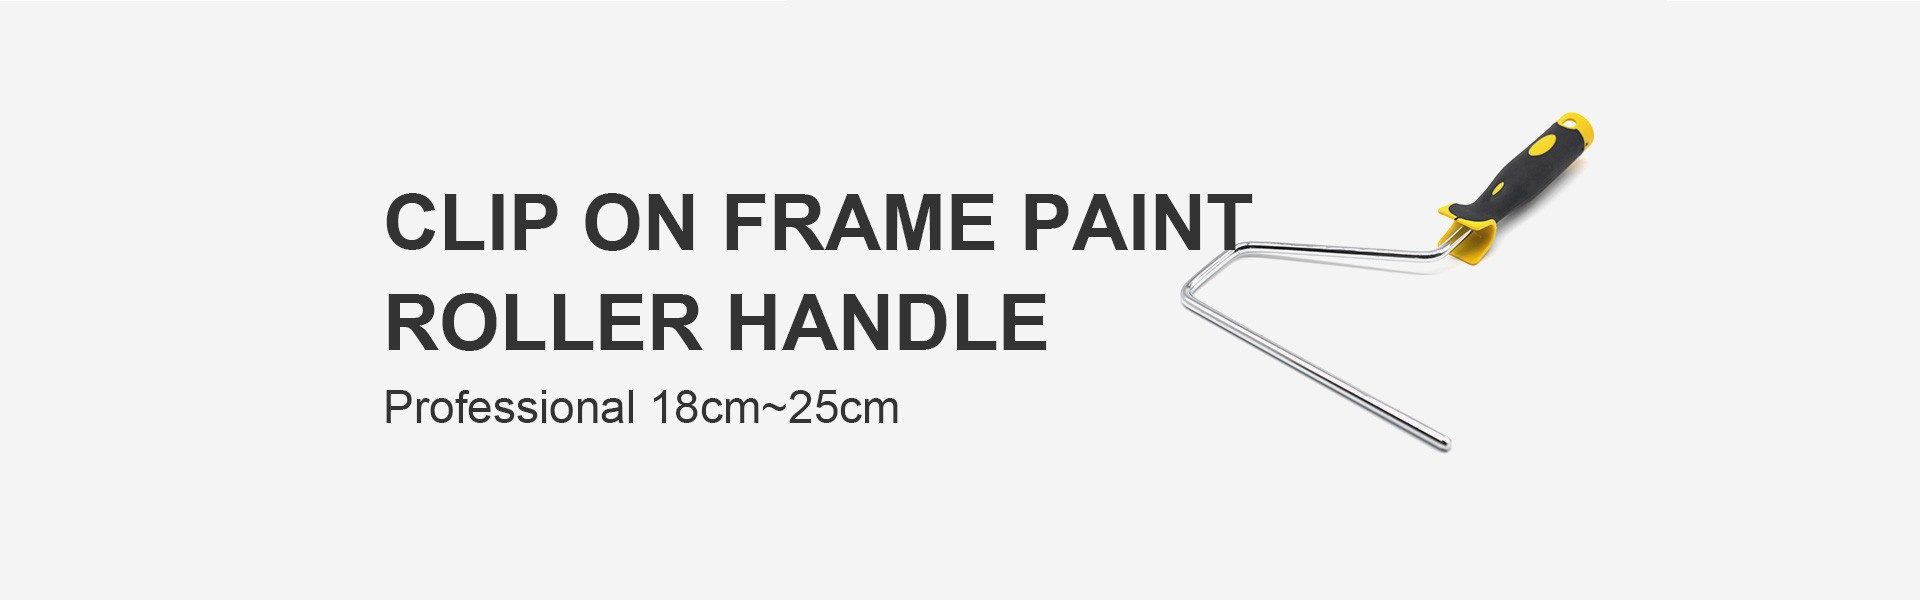 Paint Roller Handle Frame